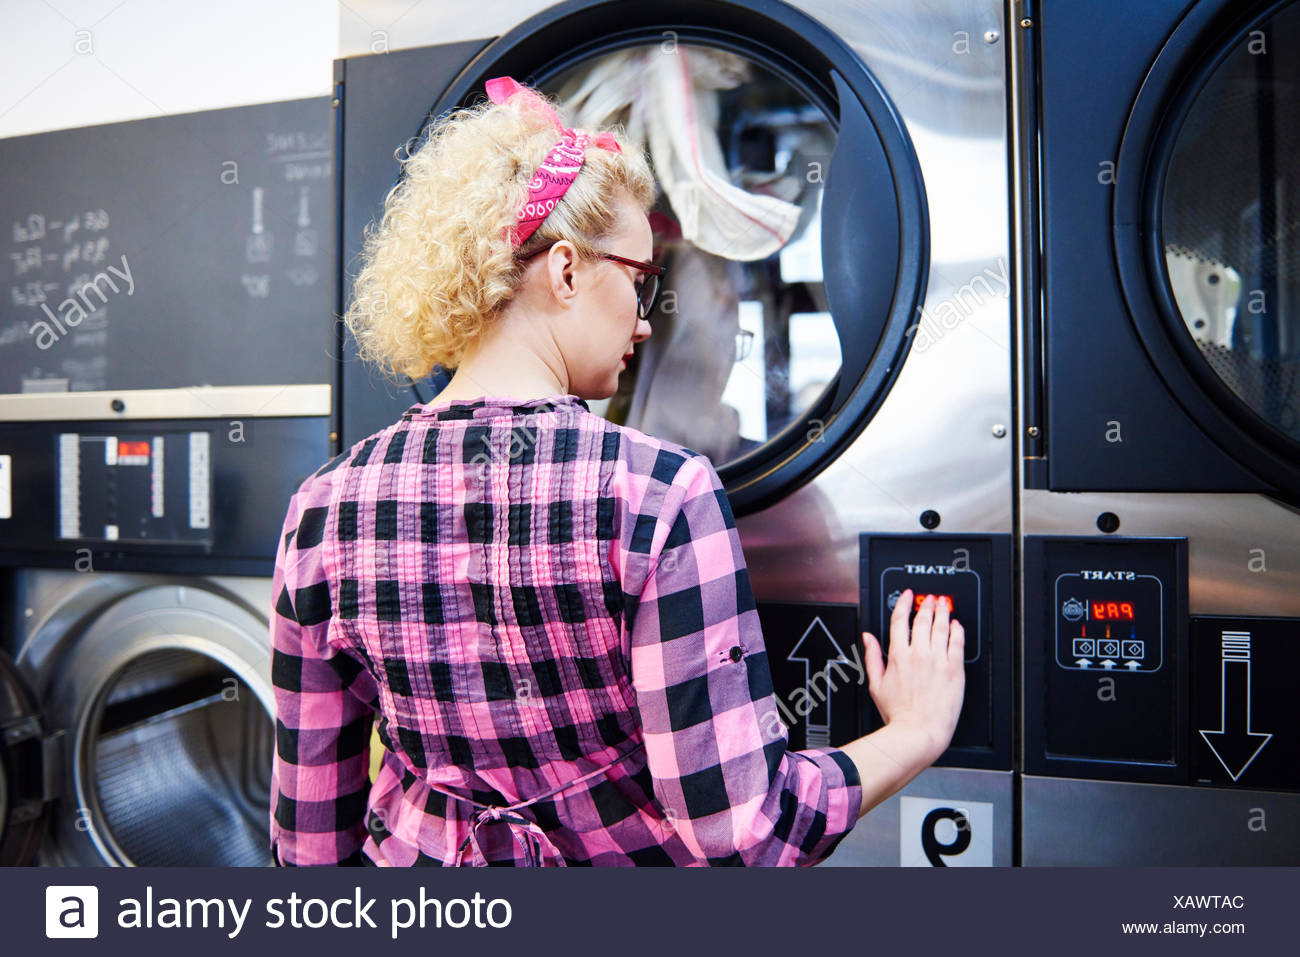 Woman pressing washing machine buttons at laundrette - Stock Image